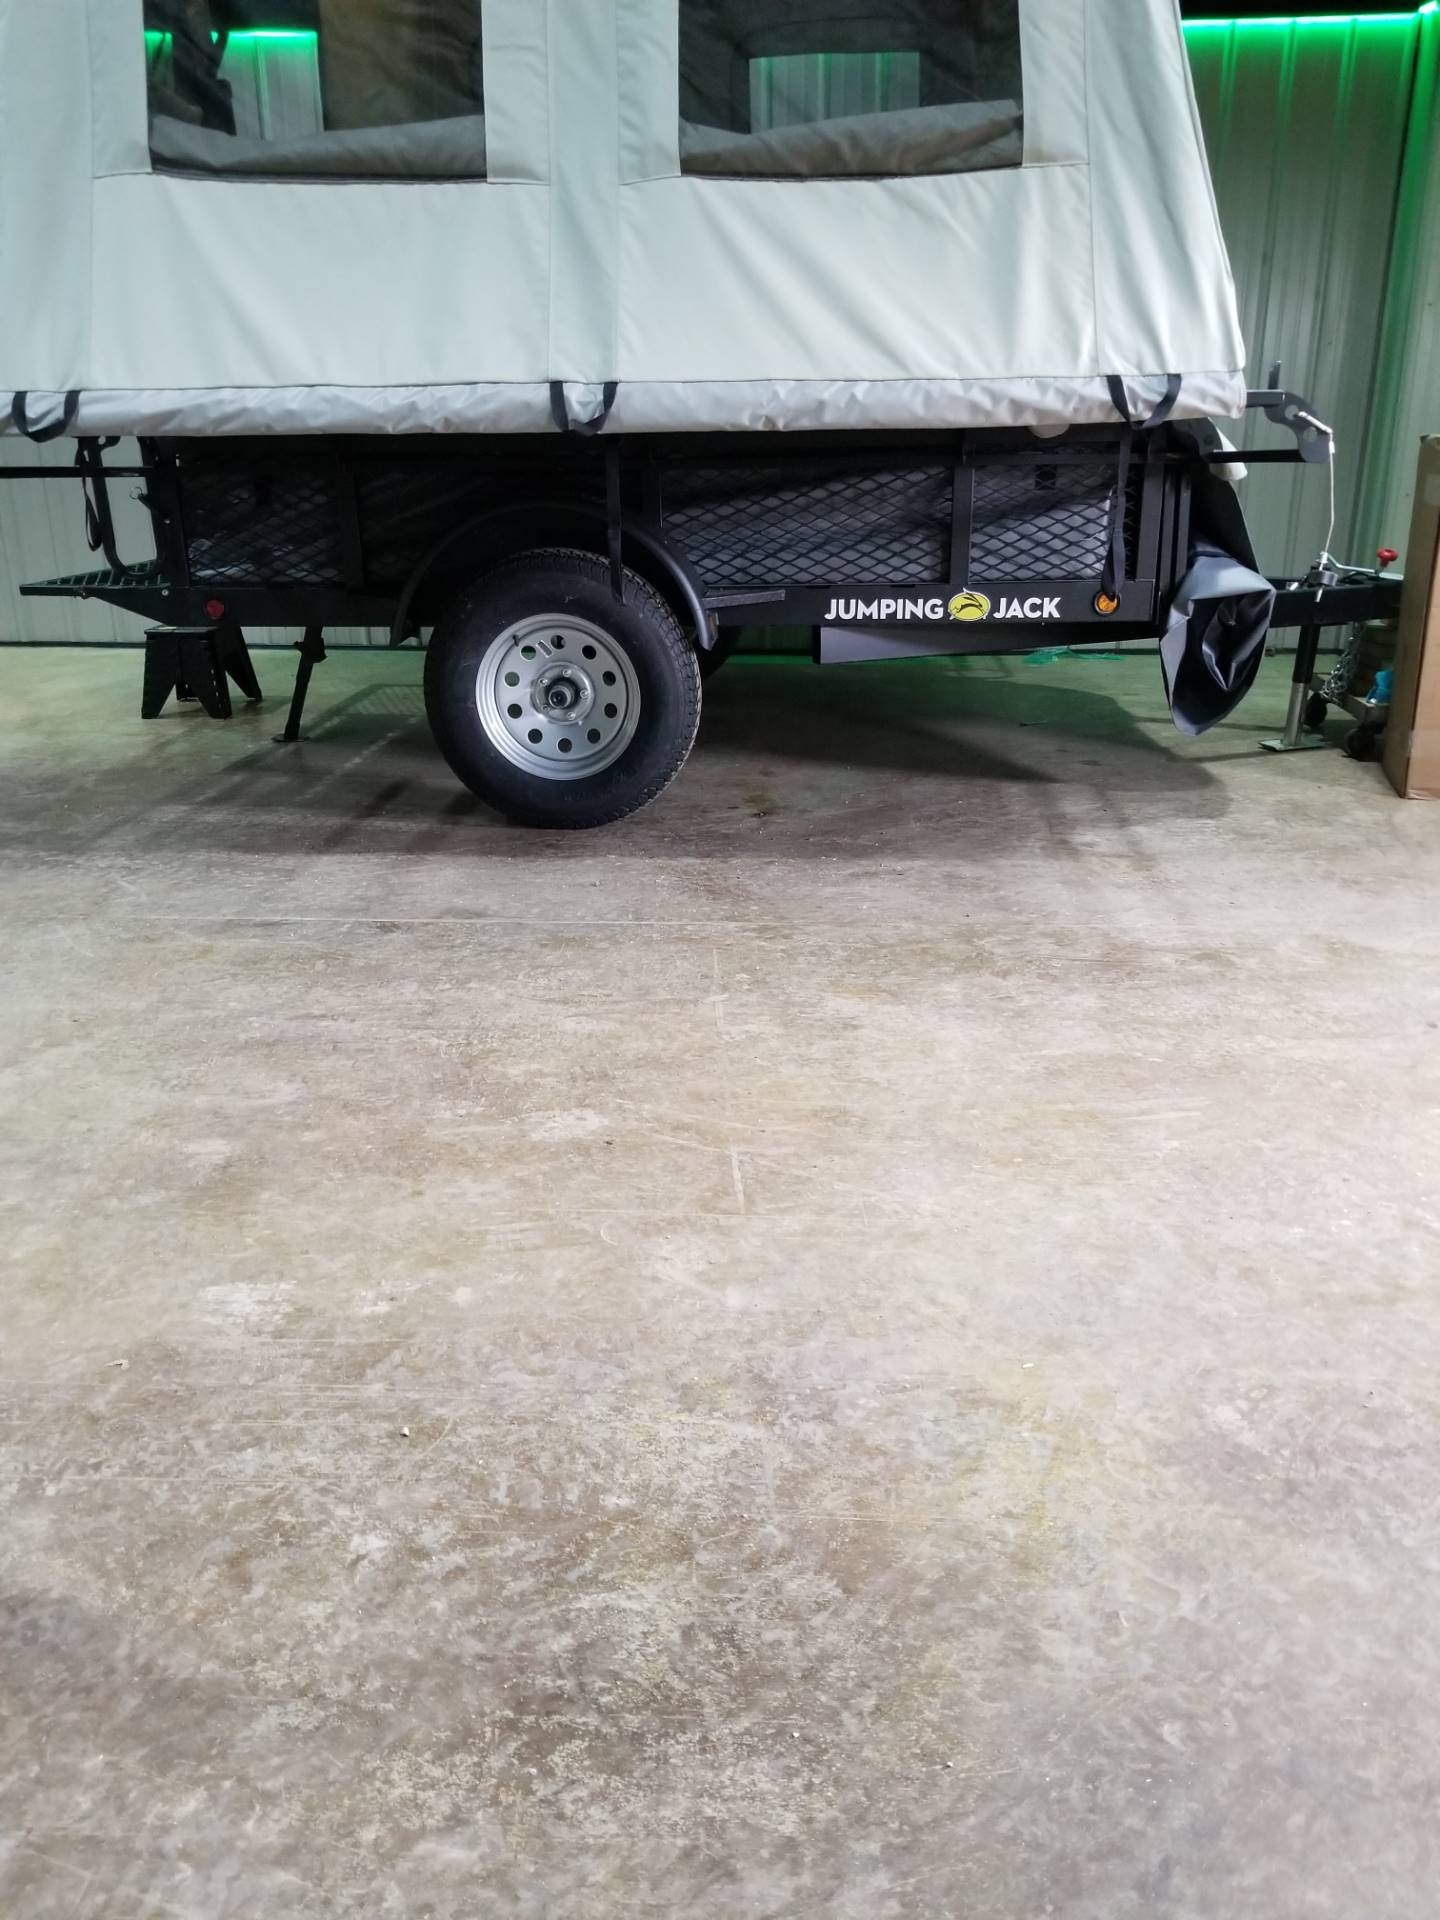 2019 Jumping Jacks Trailers JJT6X8 in Hillsboro, Wisconsin - Photo 2